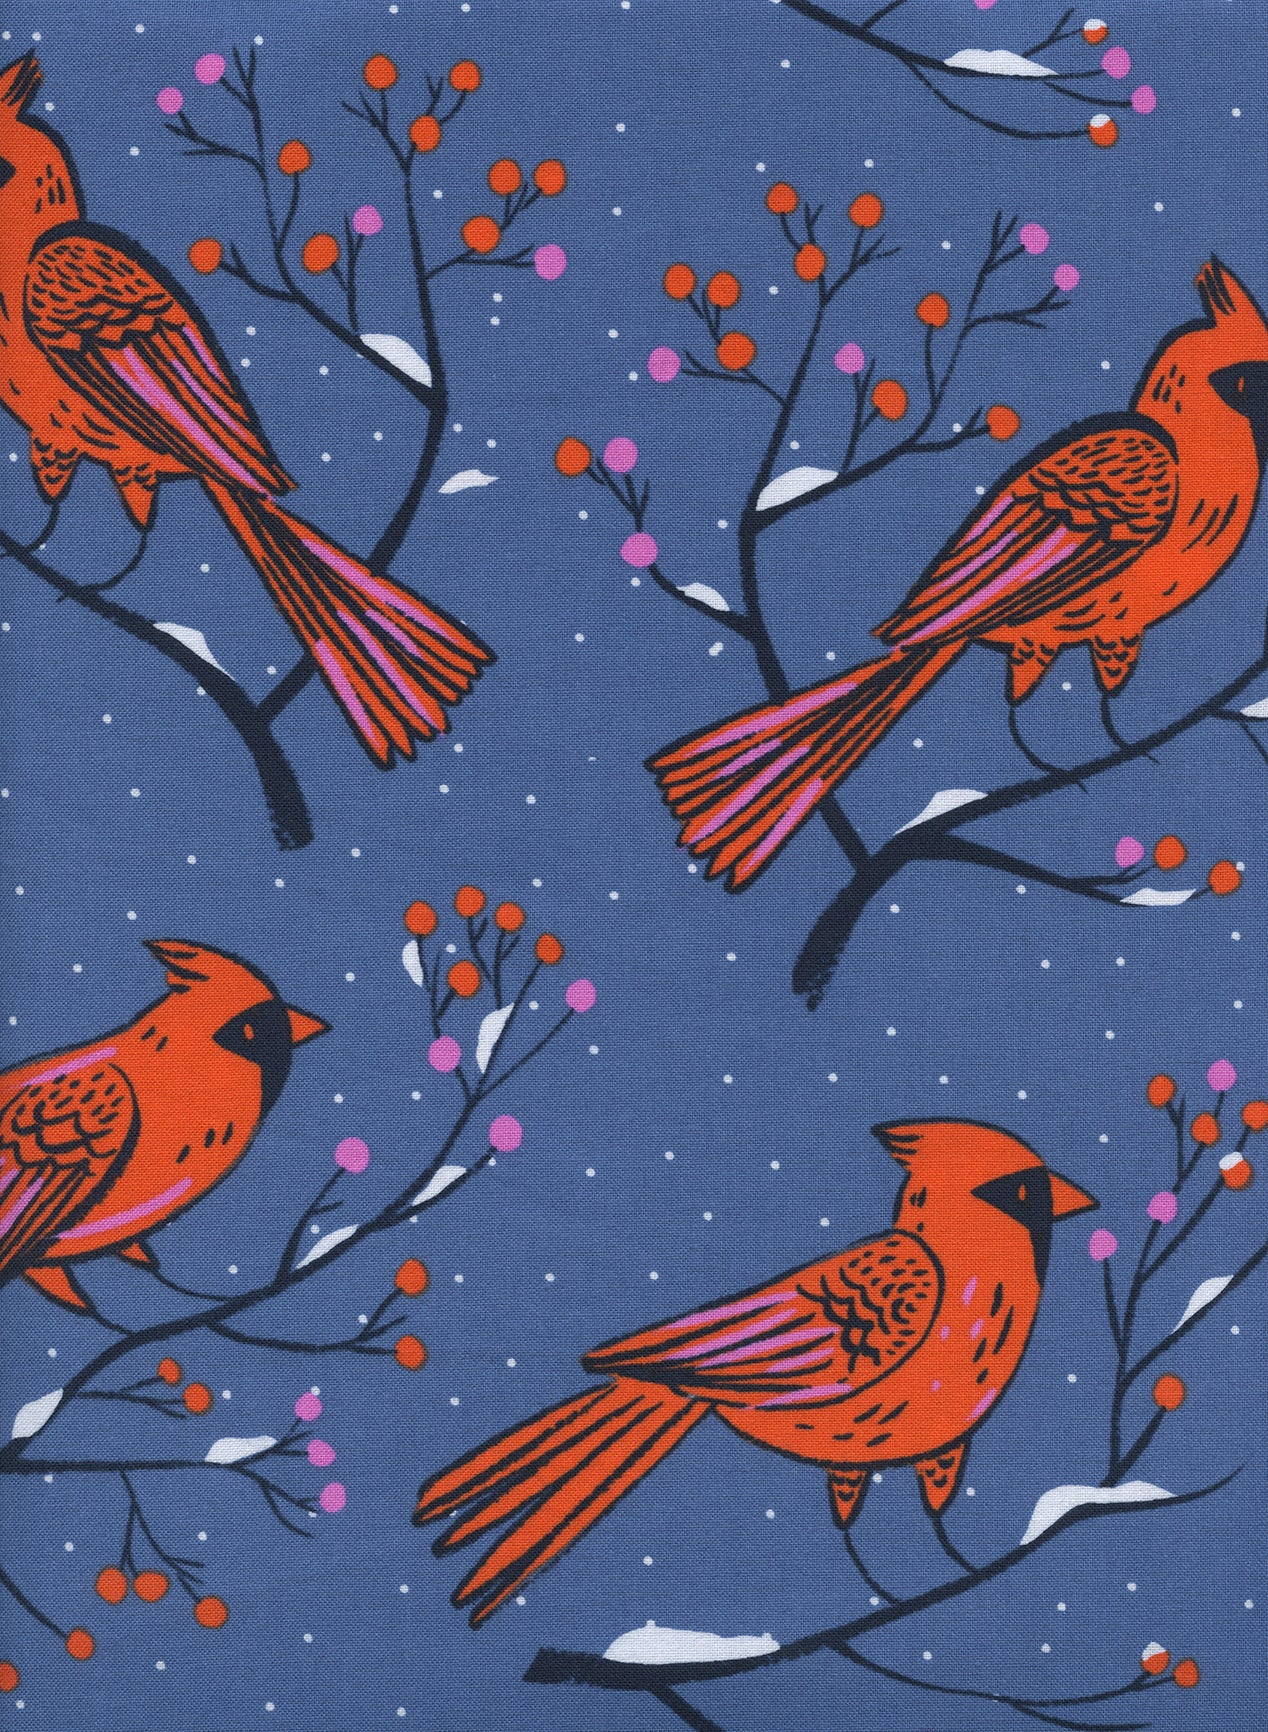 C+S Frost - Winter Cardinals - Blue Fabric